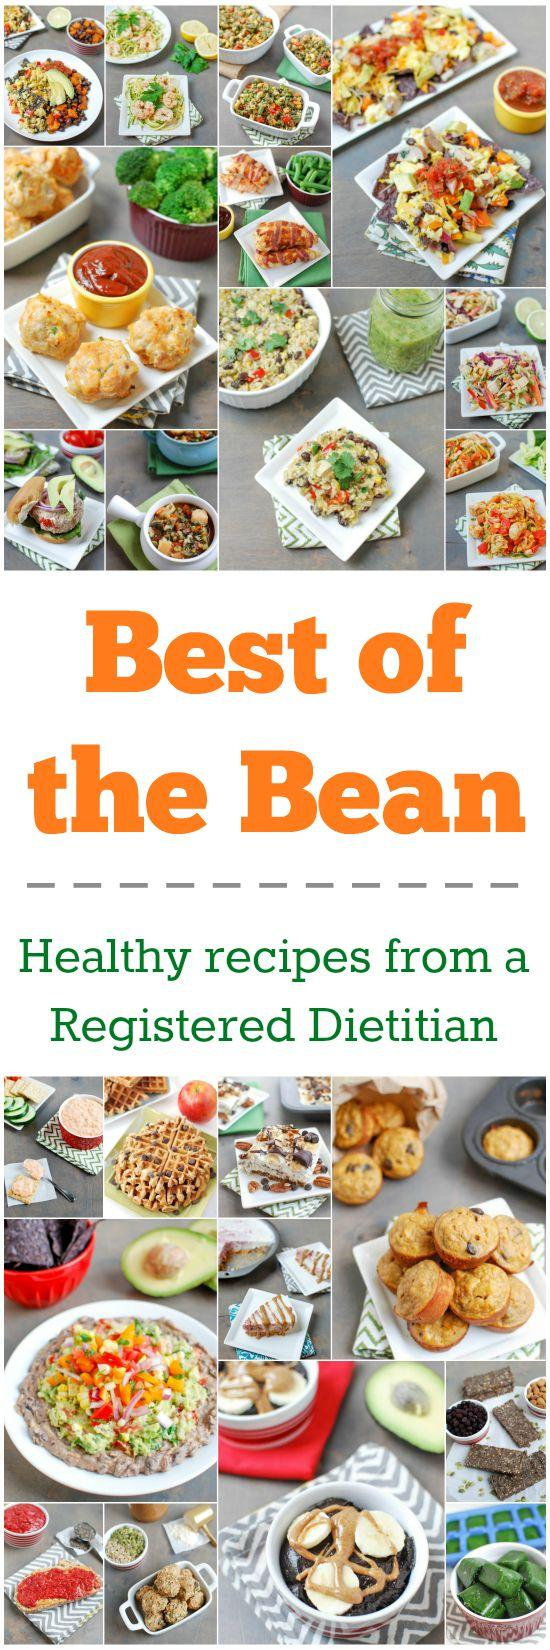 Healthy recipes from a Registered Dietitian during her 5th year of blogging.